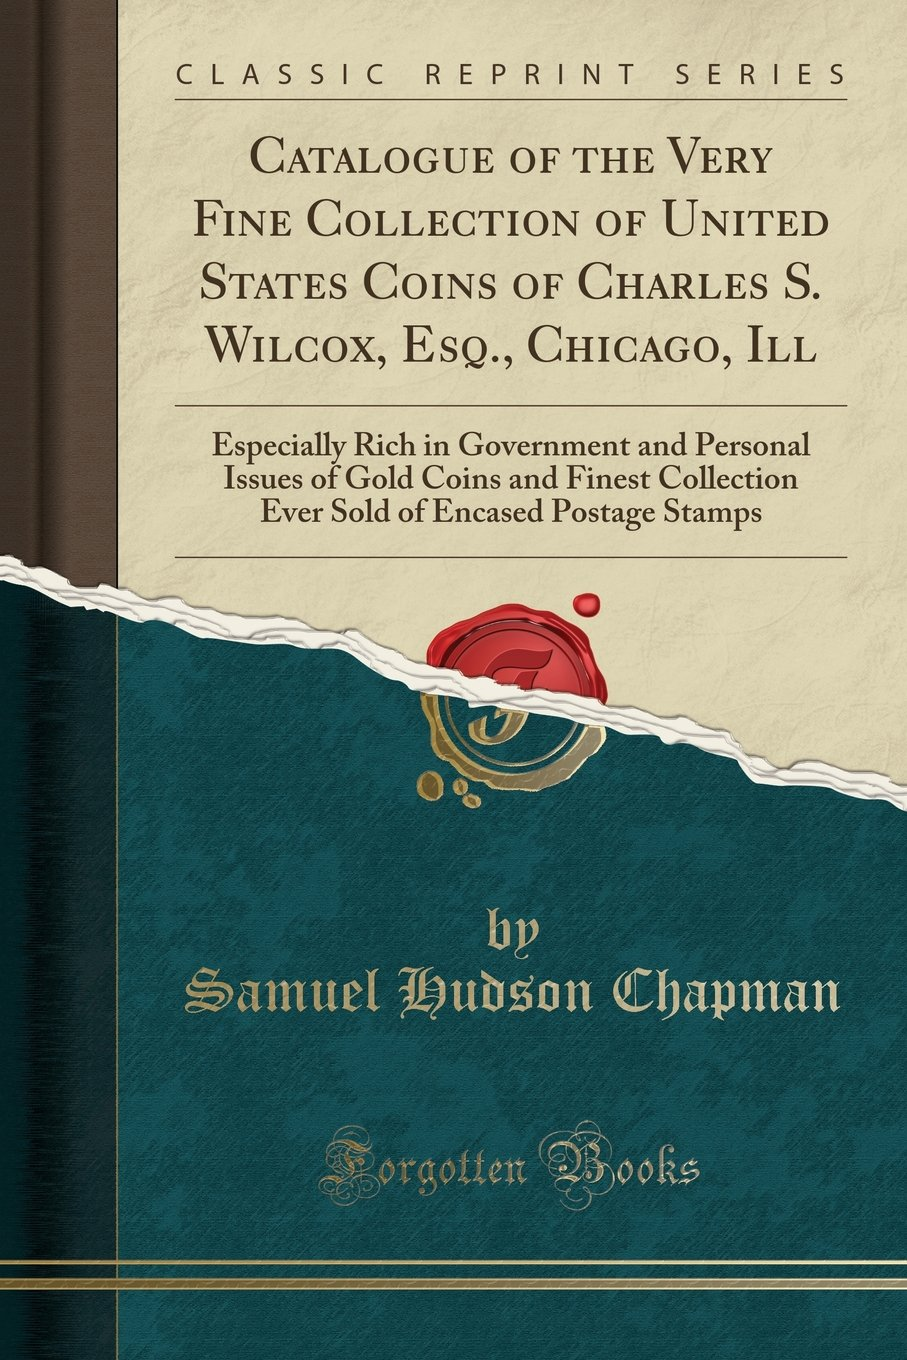 Download Catalogue of the Very Fine Collection of United States Coins of Charles S. Wilcox, Esq., Chicago, Ill: Especially Rich in Government and Personal ... of Encased Postage Stamps (Classic Reprint) pdf epub